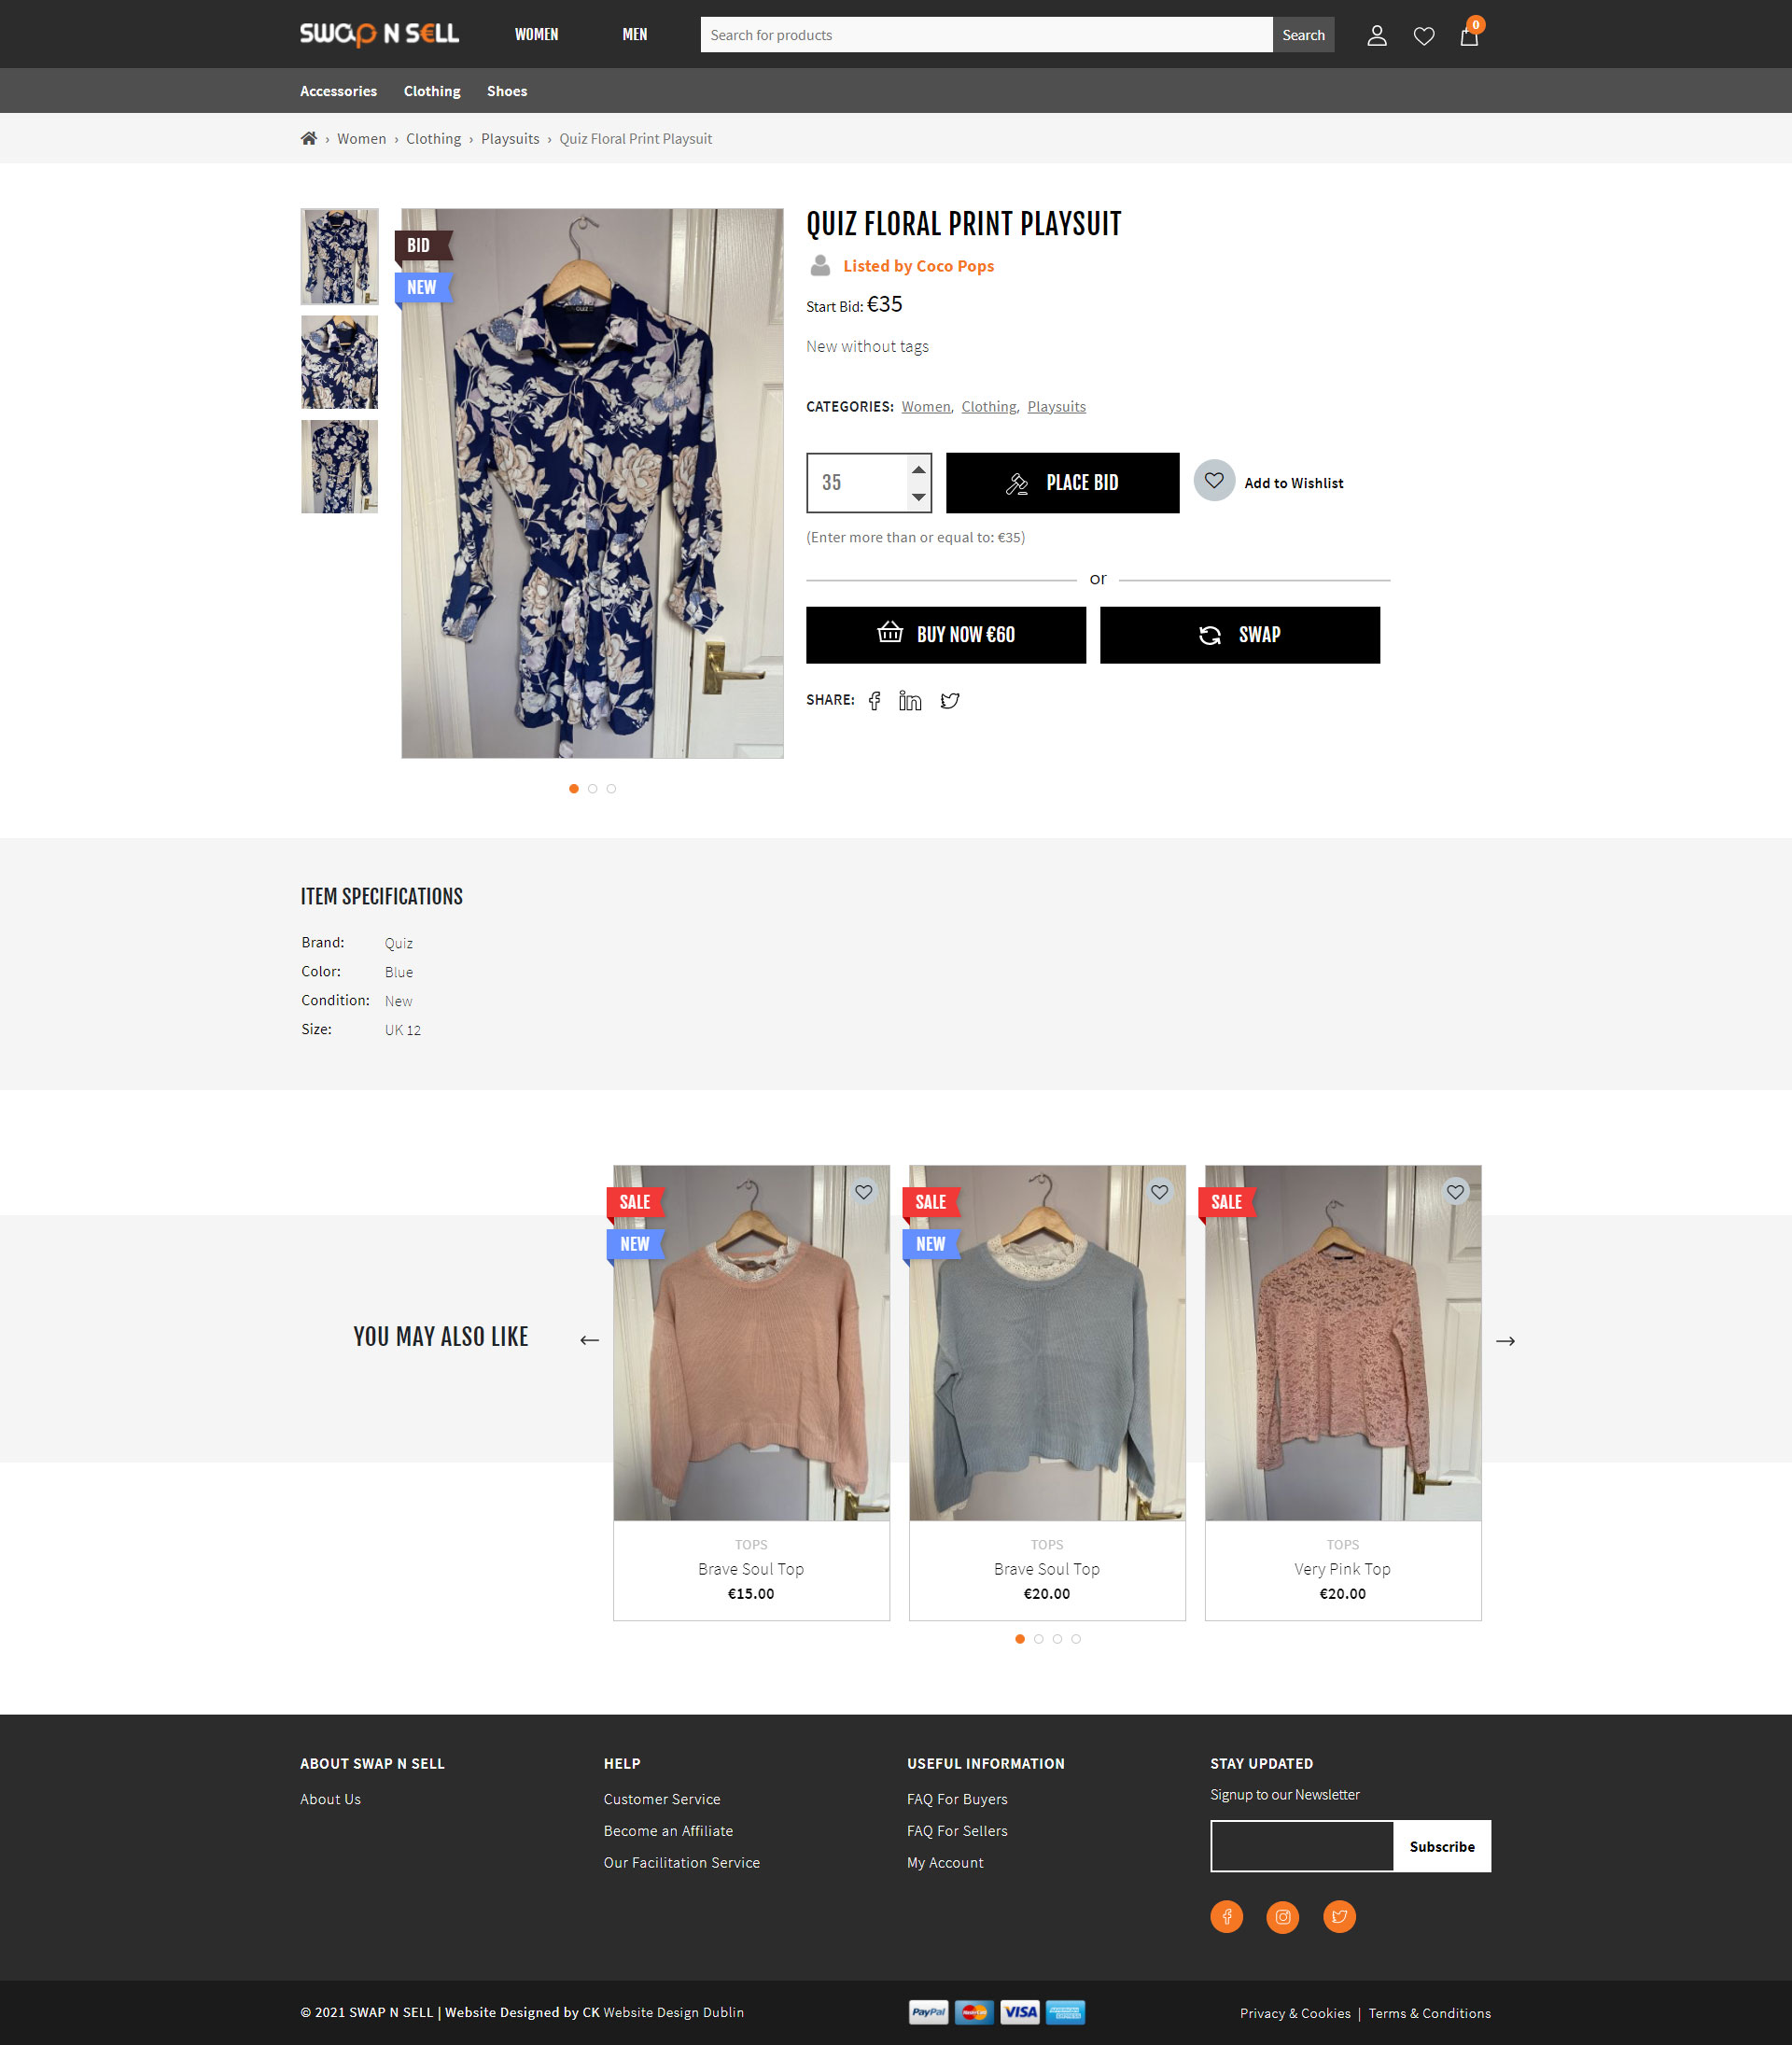 Swap n sell product page design by ck website design Dublin Ireland